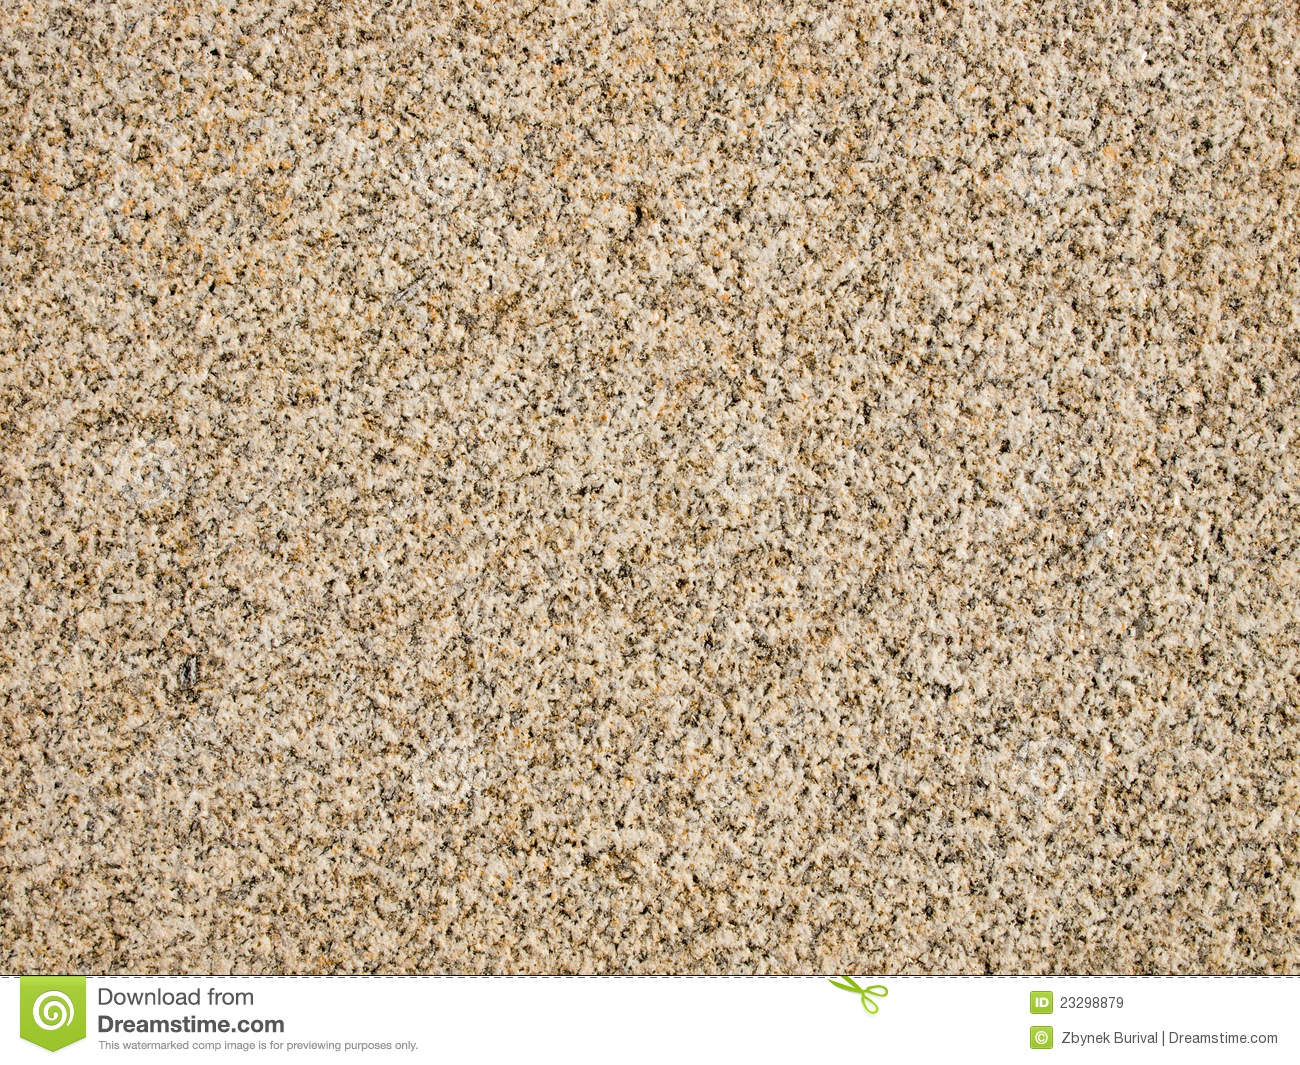 Rough granite texture stock image image of granitic for Photo de granite